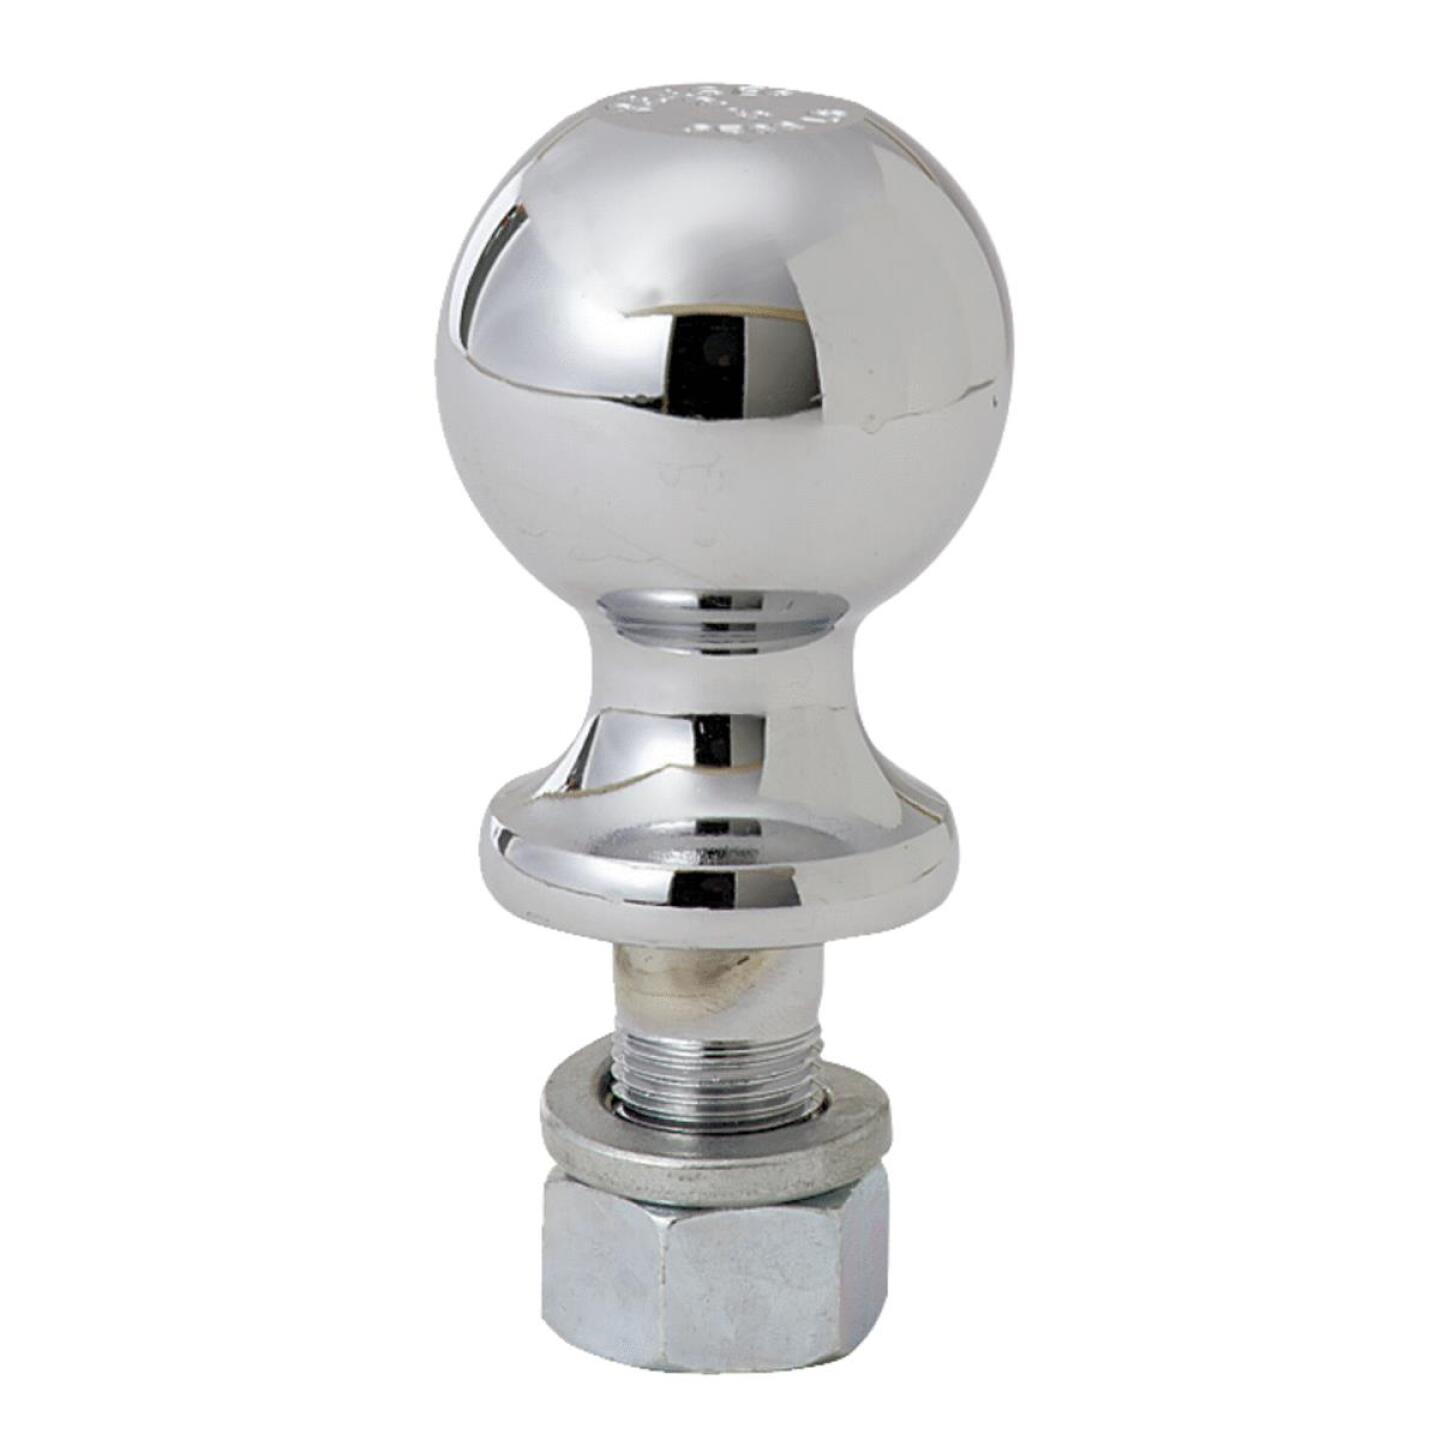 Reese Towpower 2 In. x 3/4 In. x 1-1/2 In. Hitch Ball Image 1